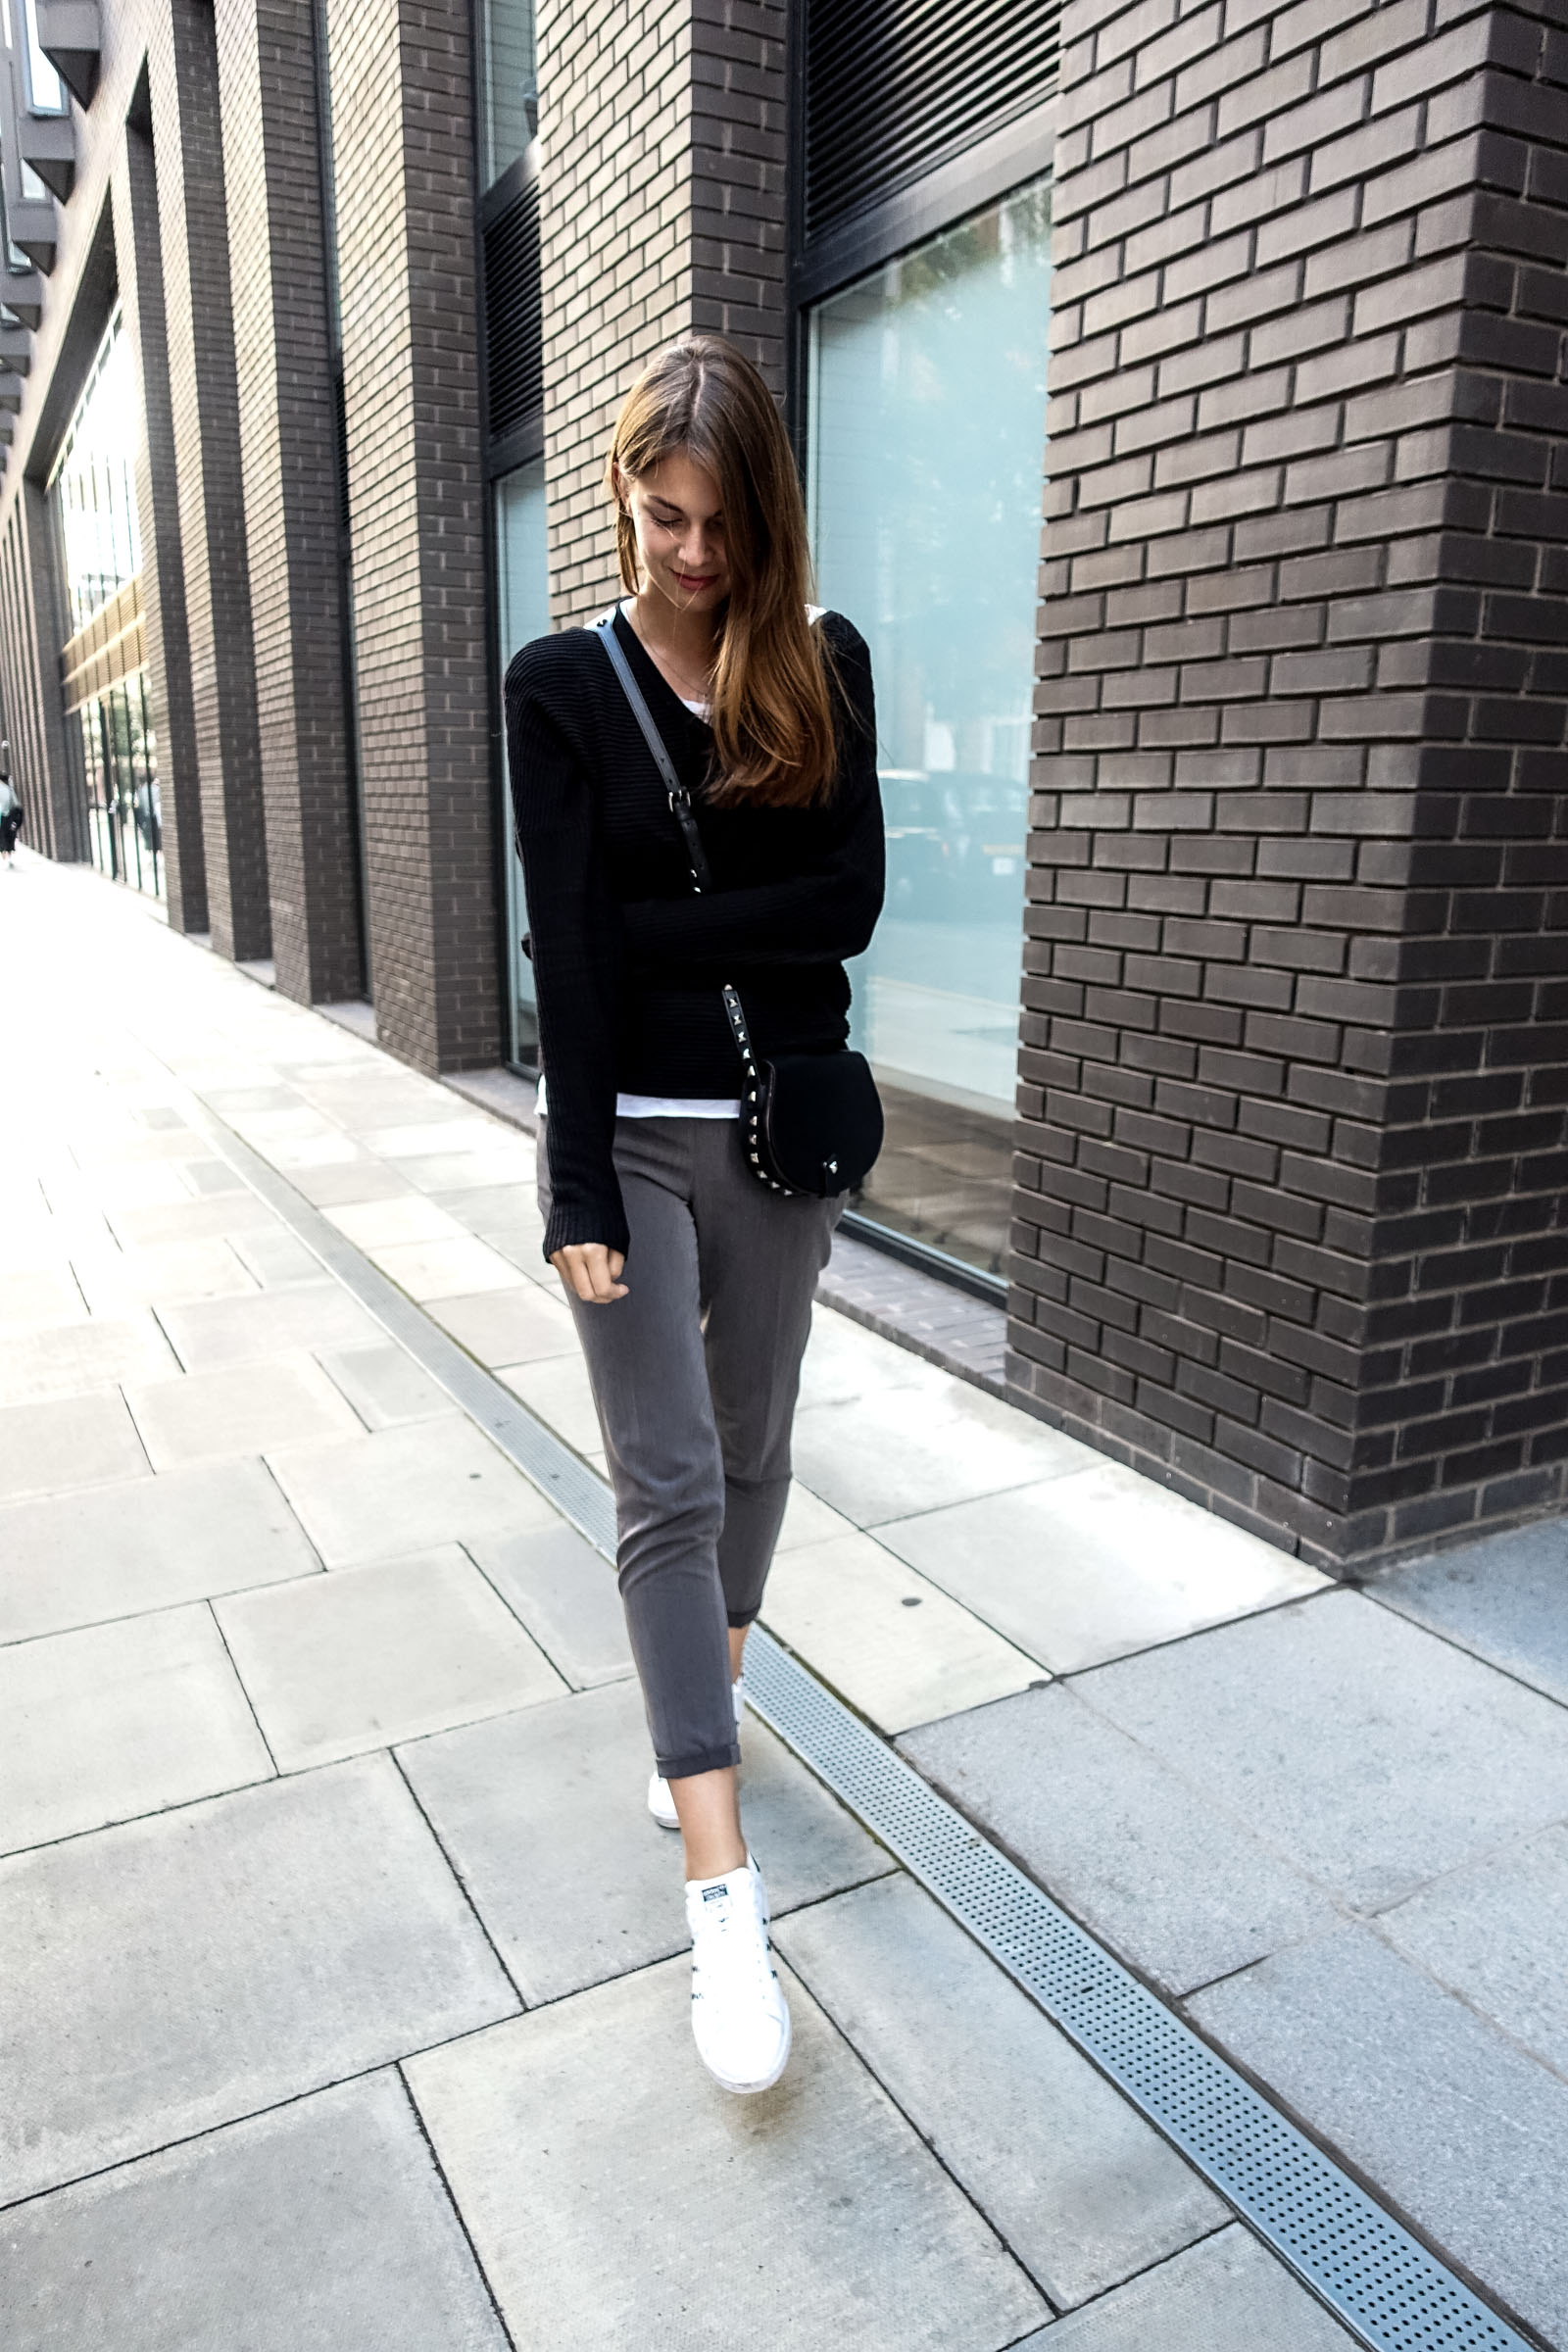 Fashion In London Today: Casual London Outfit